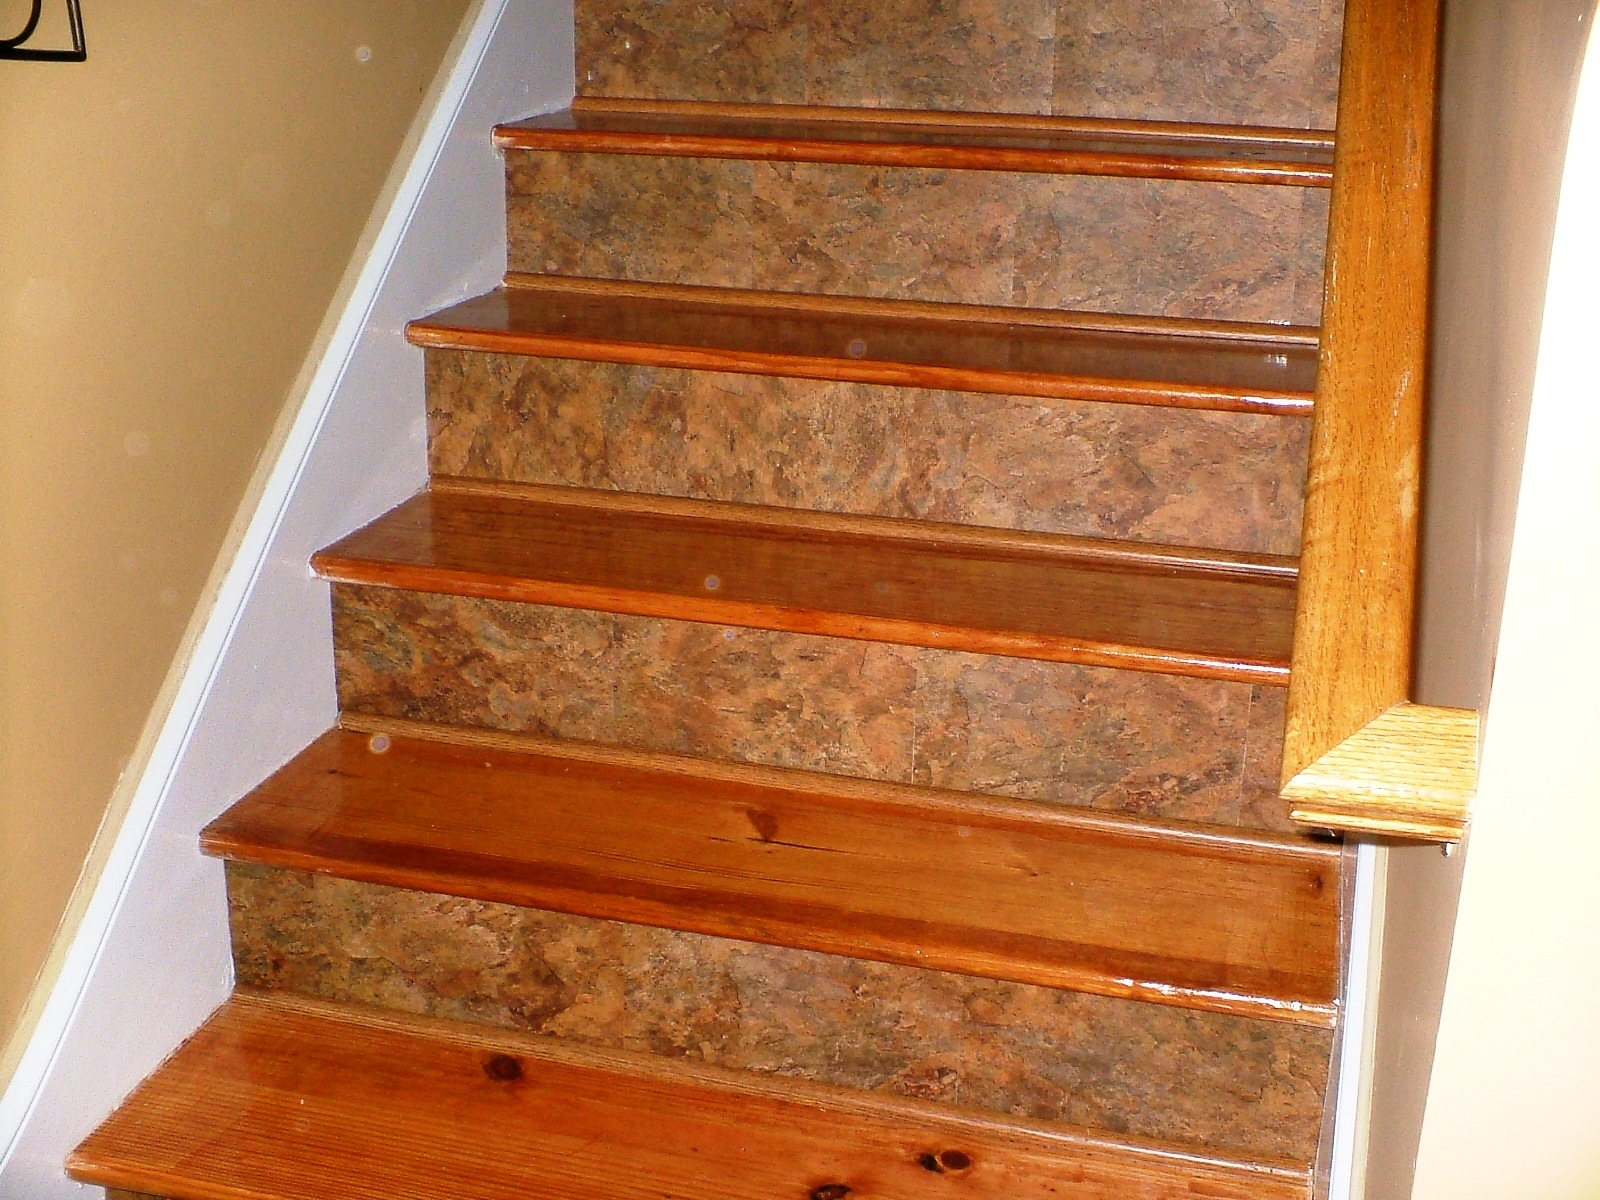 20 Best Ideas of Stair Tread Carpet Tiles